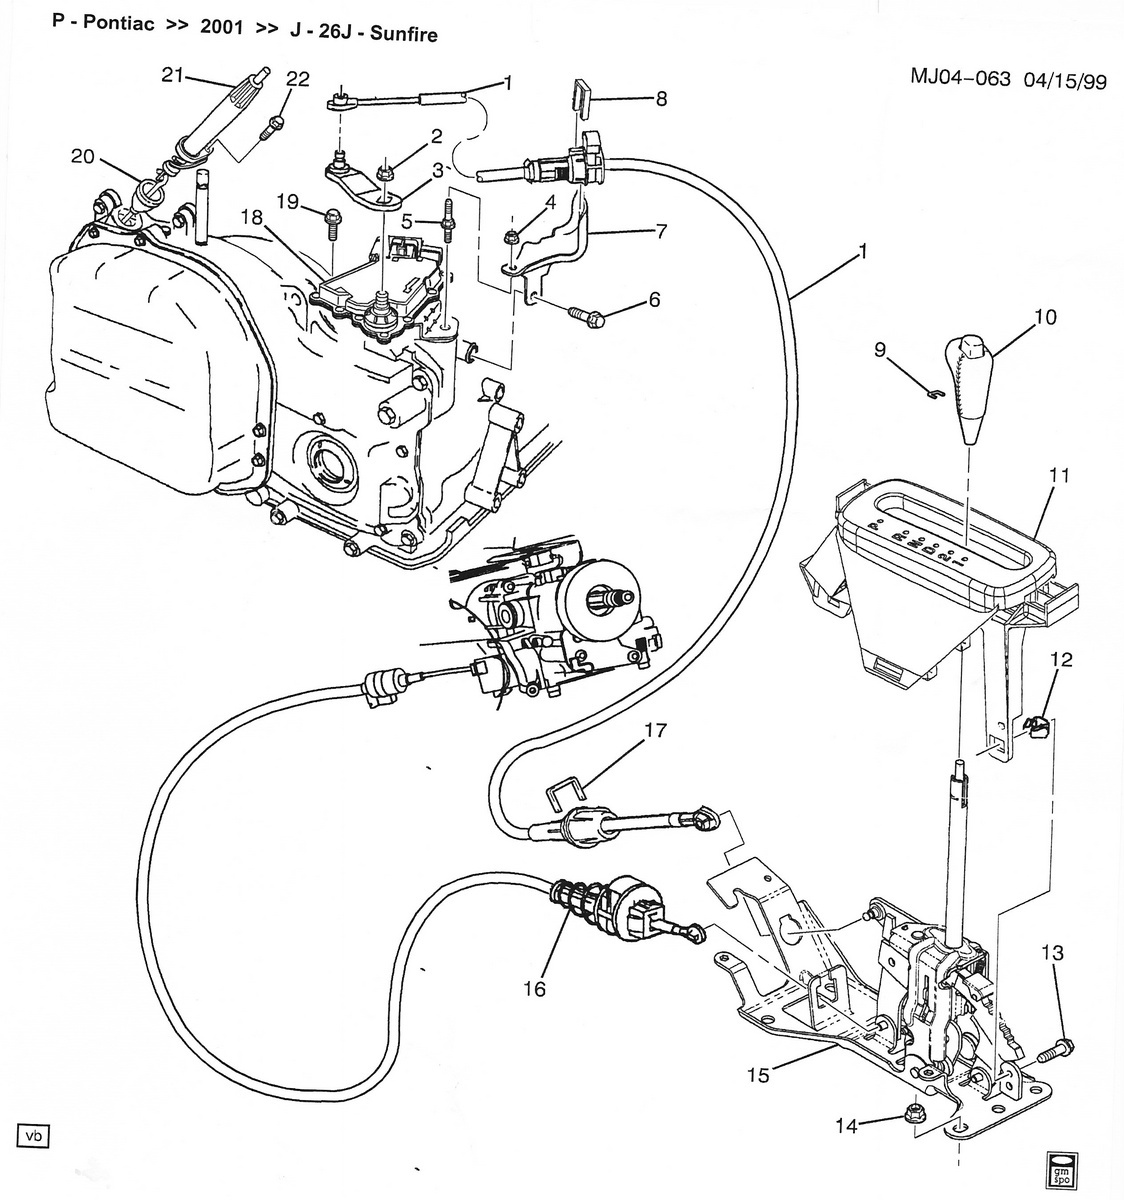 2004 Chevy Trailblazer Wiring Diagram For Wires From